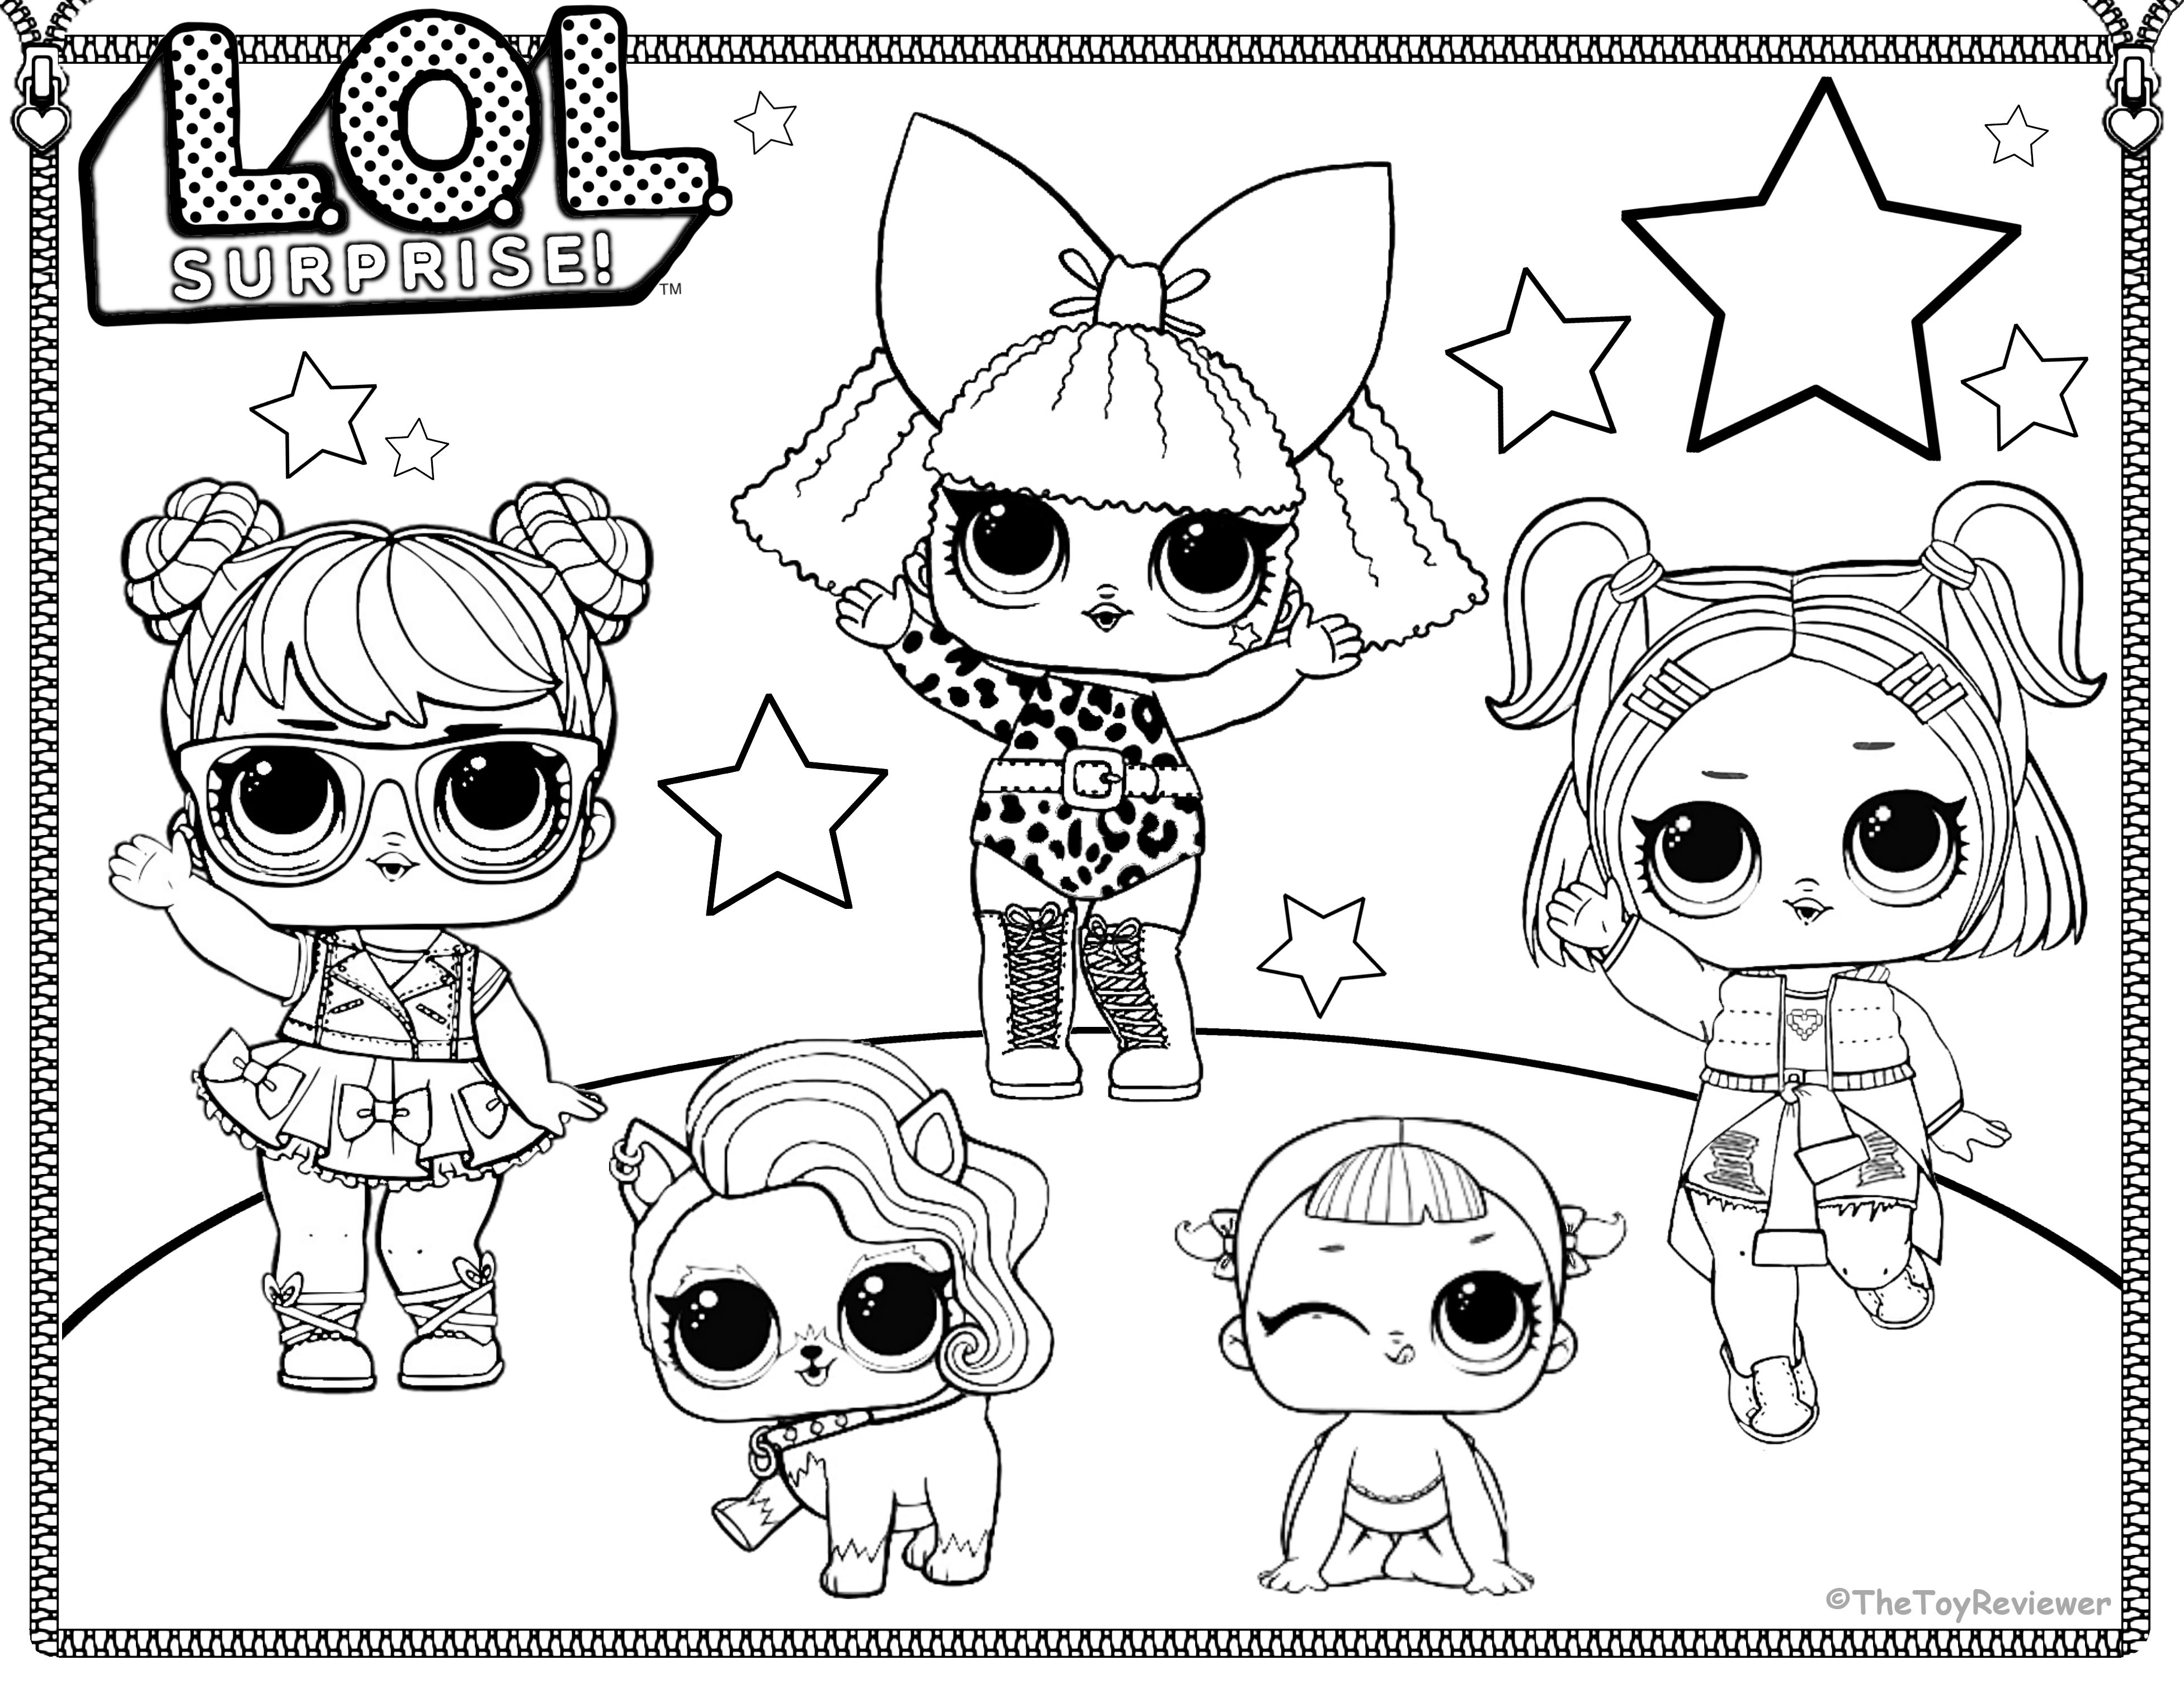 Here is the L.O.L. Surprise Coloring Page! Click the